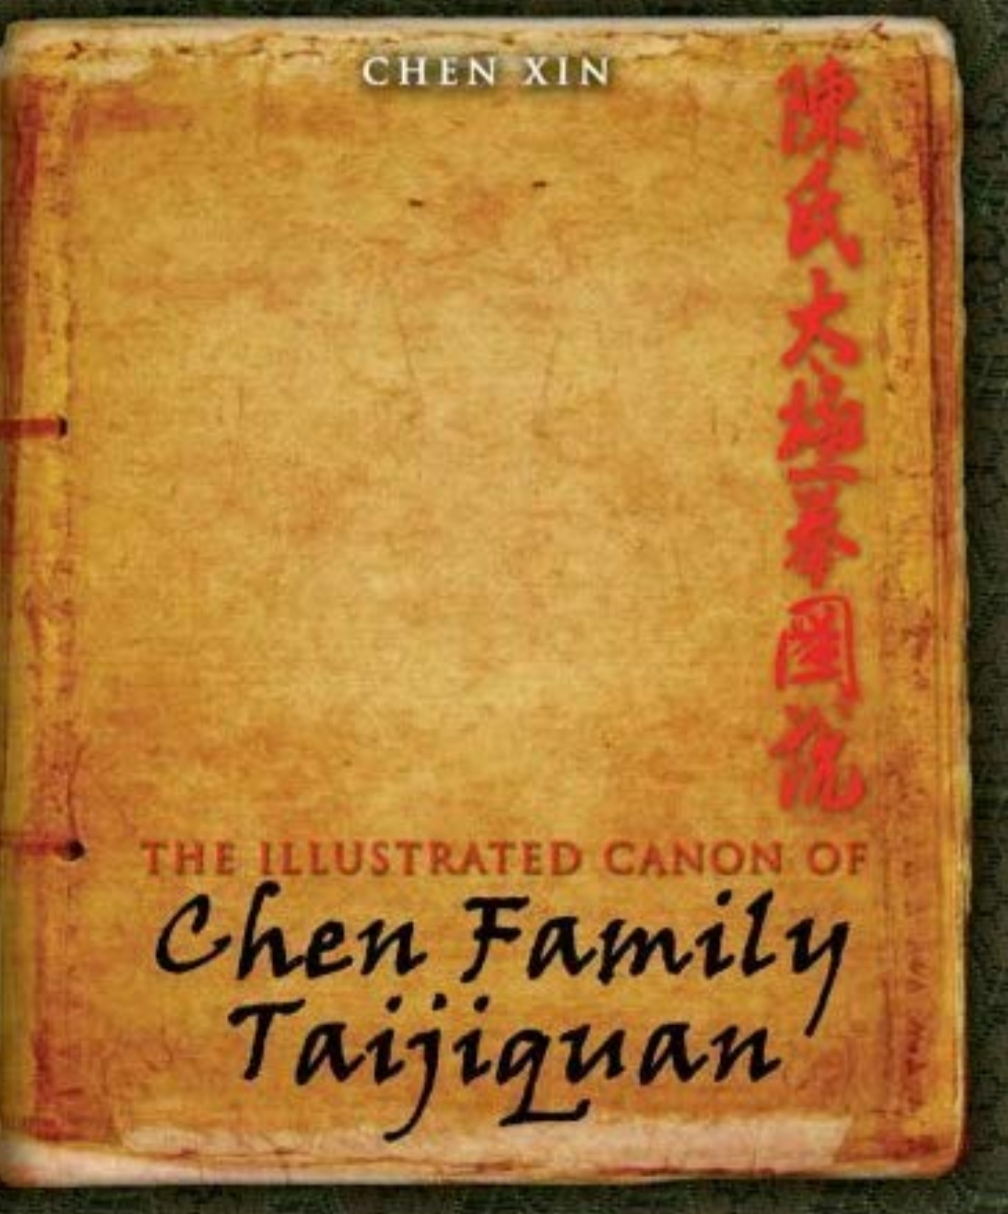 Chen Xins book took him 12 years to write.